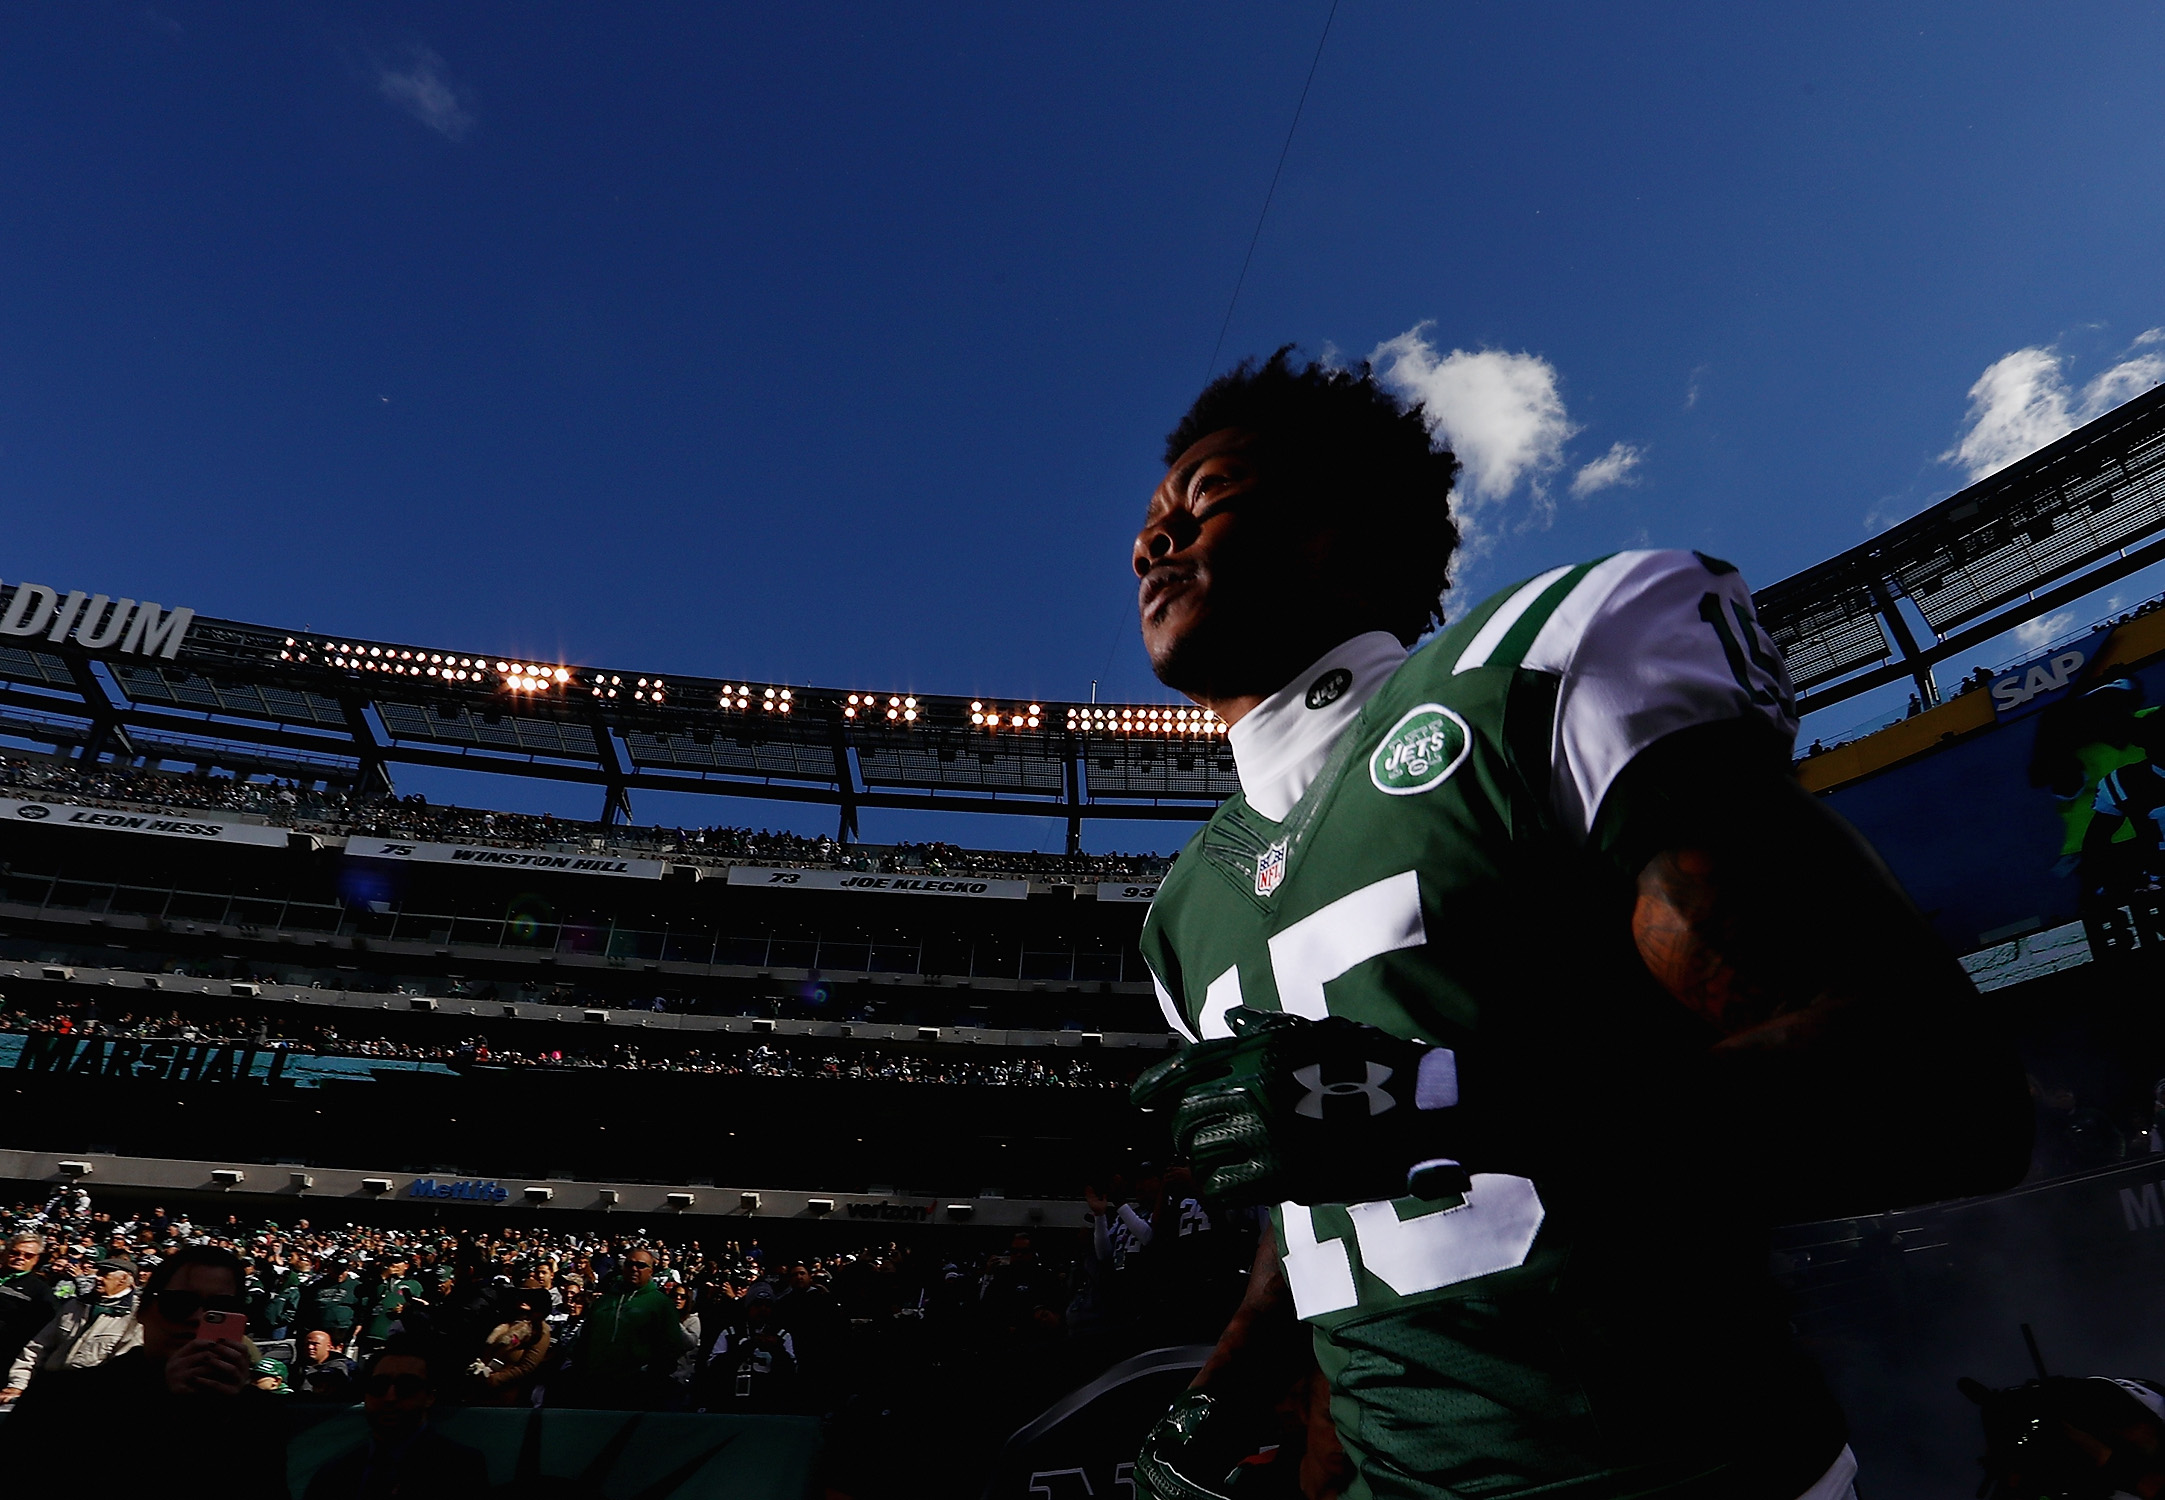 Brandon Marshall of the New York Jets runs onto the field before playing against the Baltimore Ravens at MetLife Stadium on Oct. 23, 2016 in East Rutherford, New Jersey.